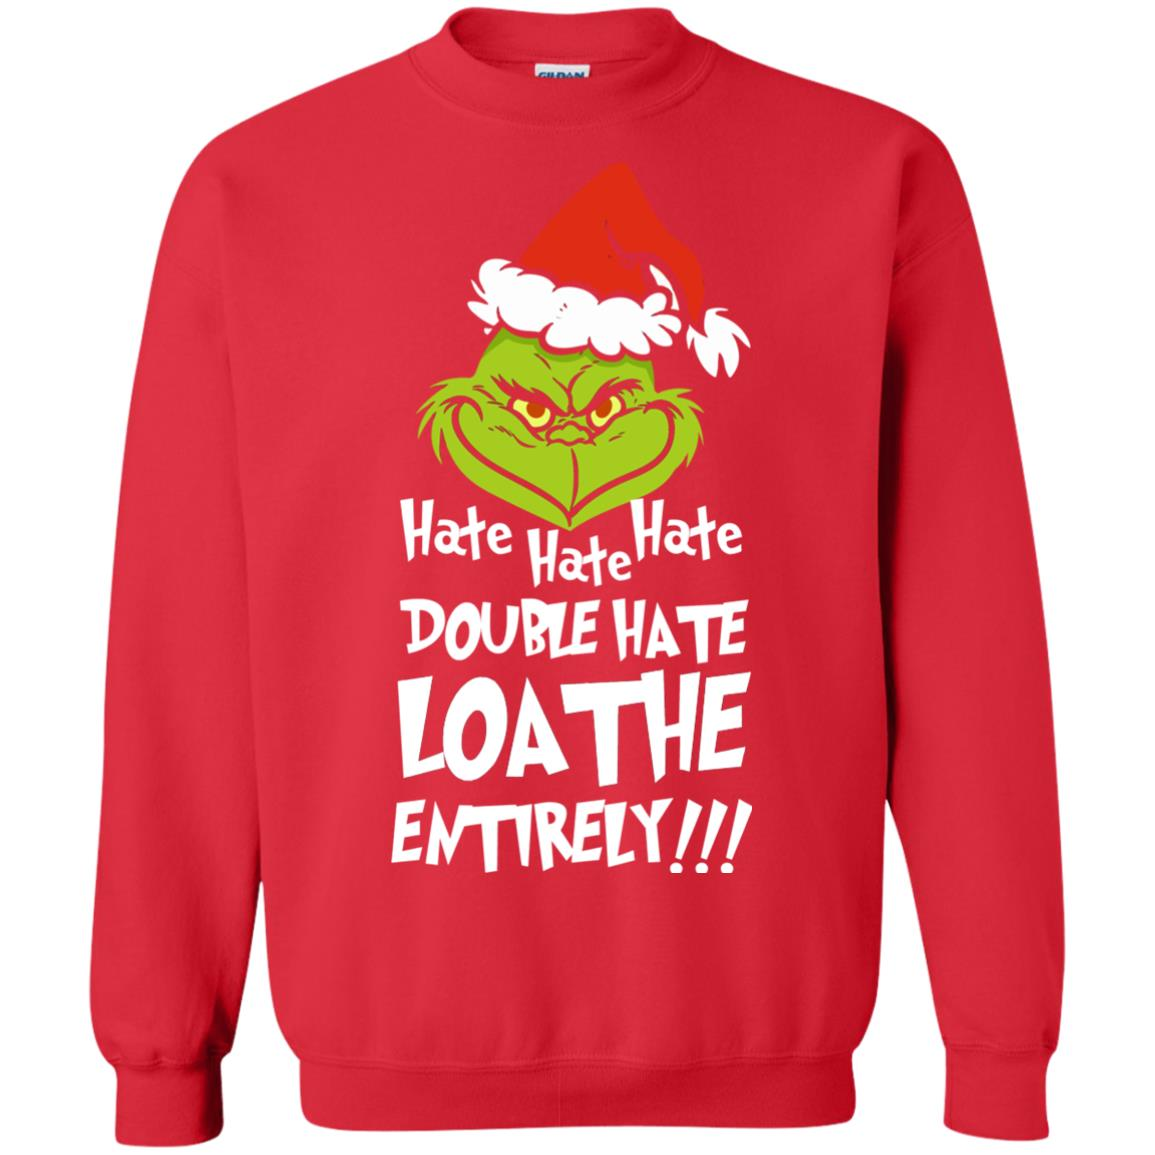 Grinch Christmas Sweater.Mr Grinch Hate Hate Hate Double Hate Loathe Entirely Christmas Sweater Ugly Sweatshirts Icestork